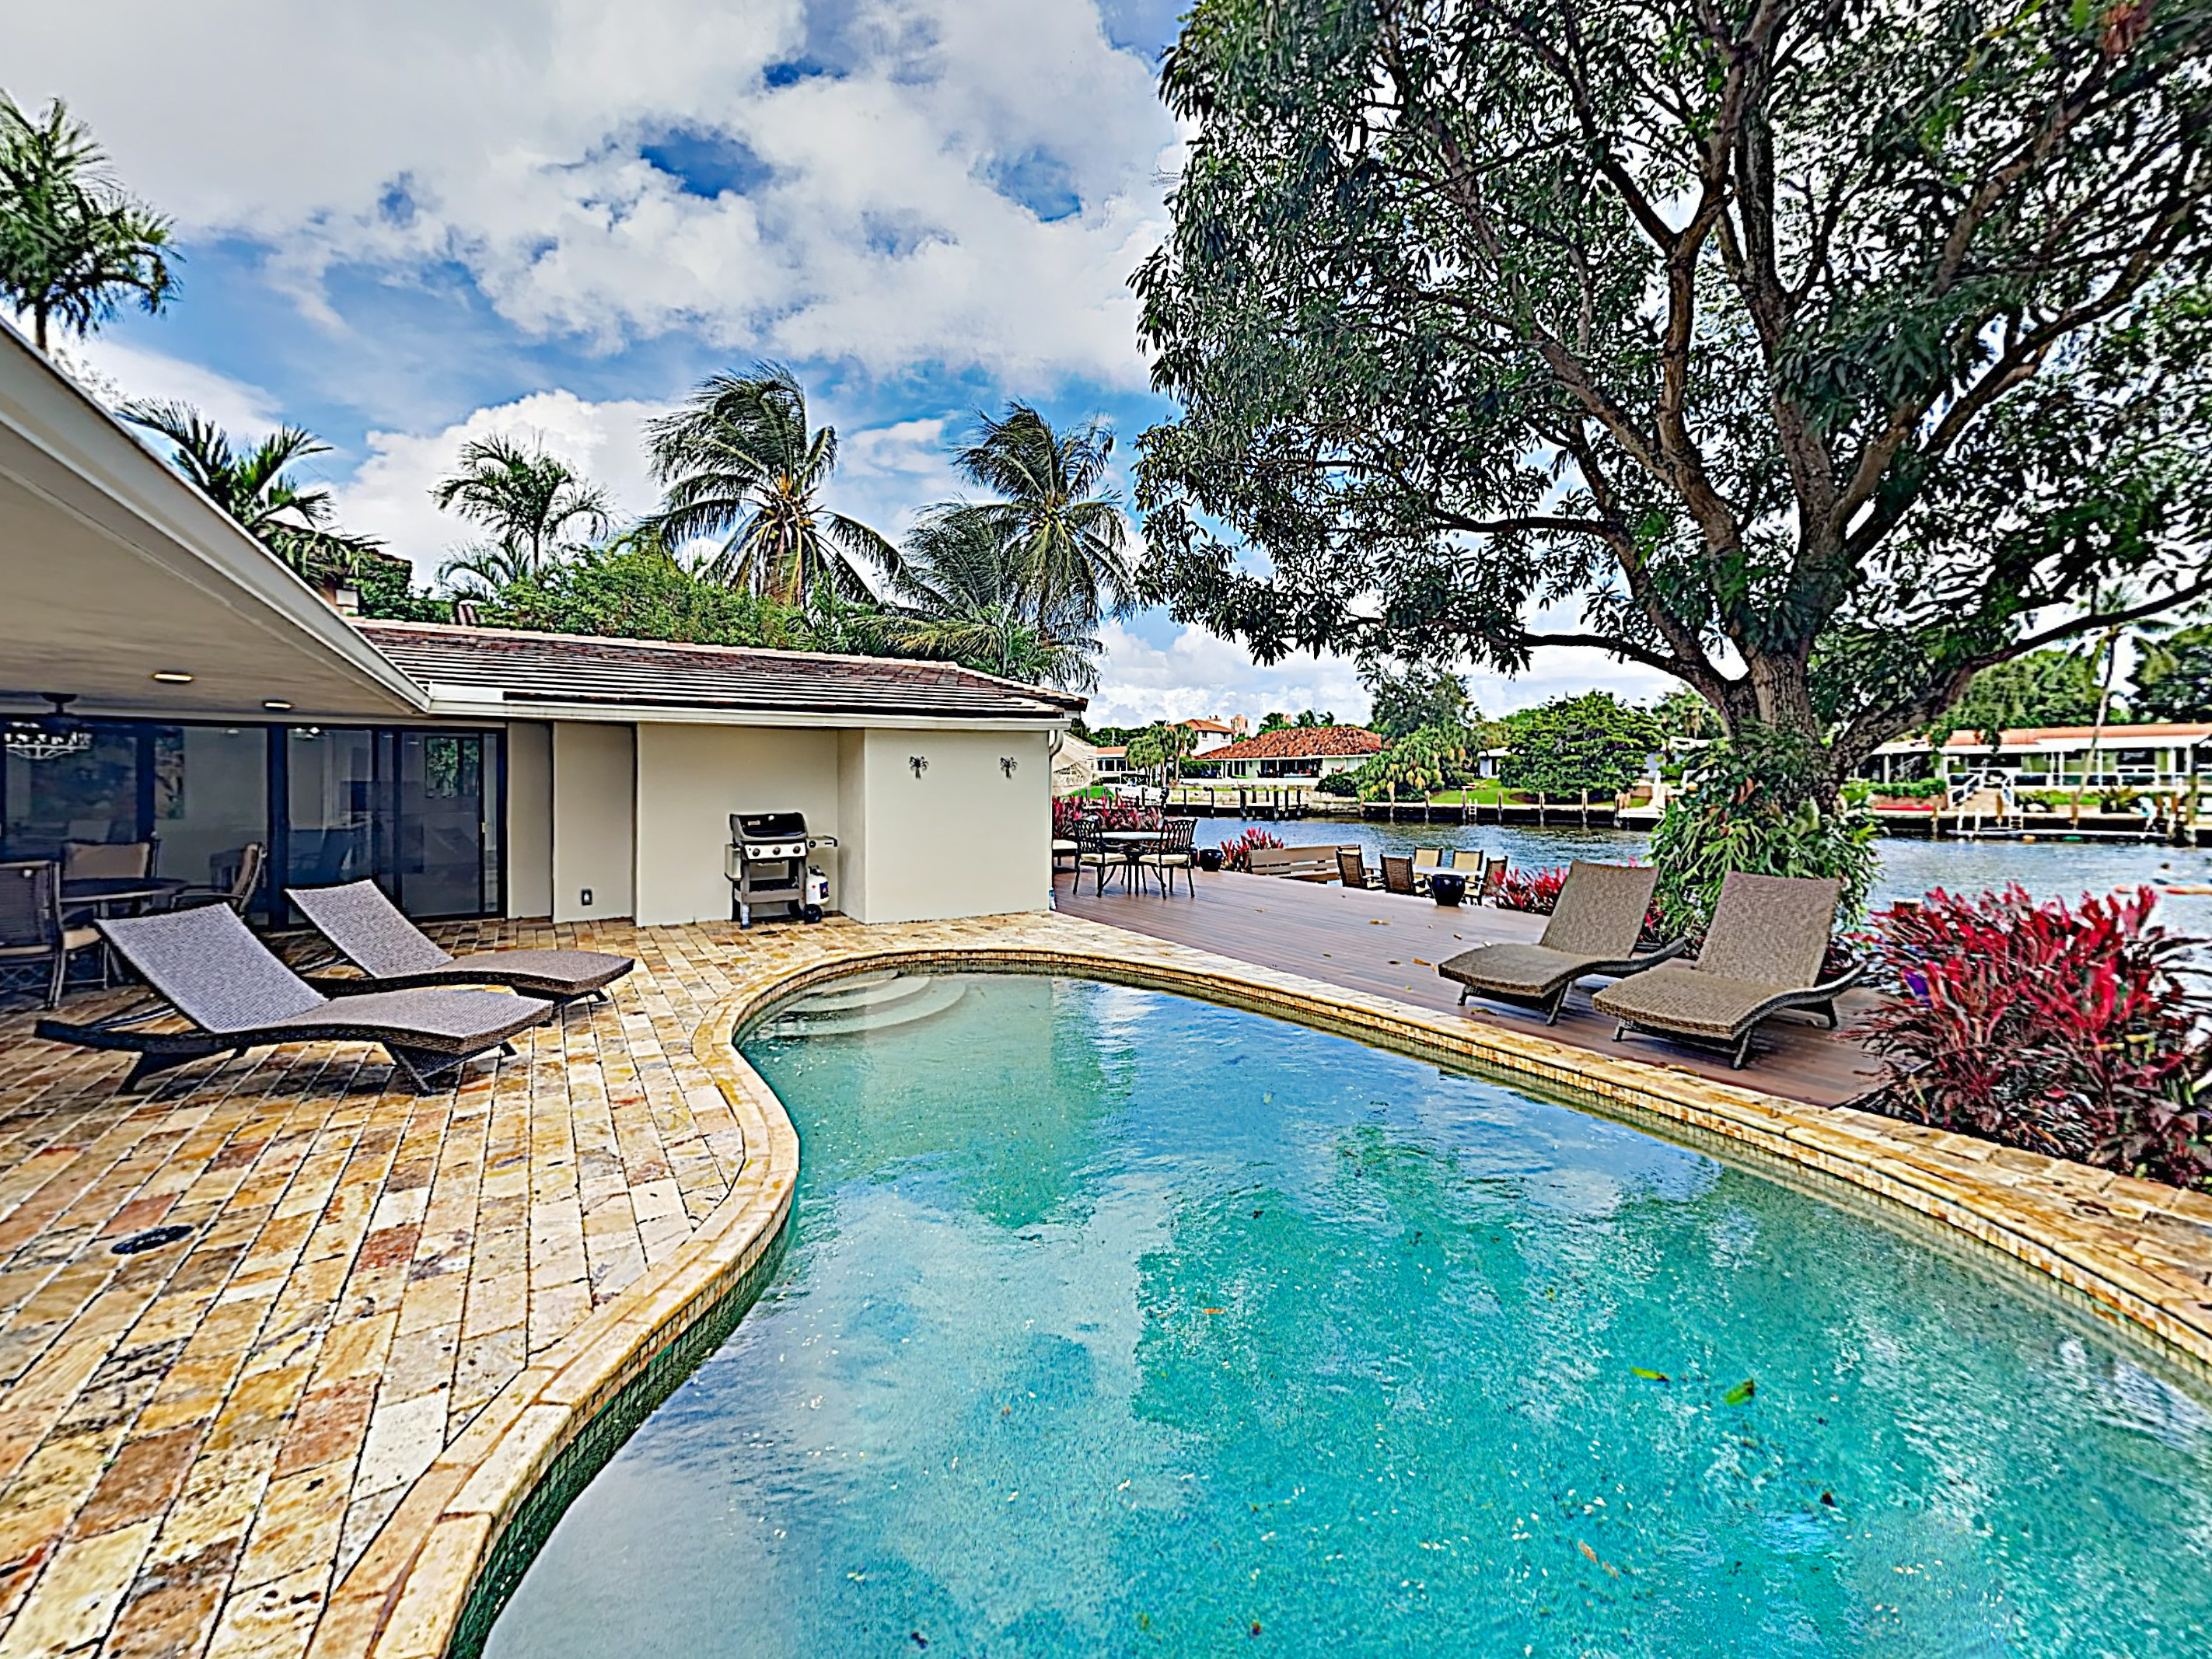 Fort Lauderdale FL Vacation Rental Welcome to Fort